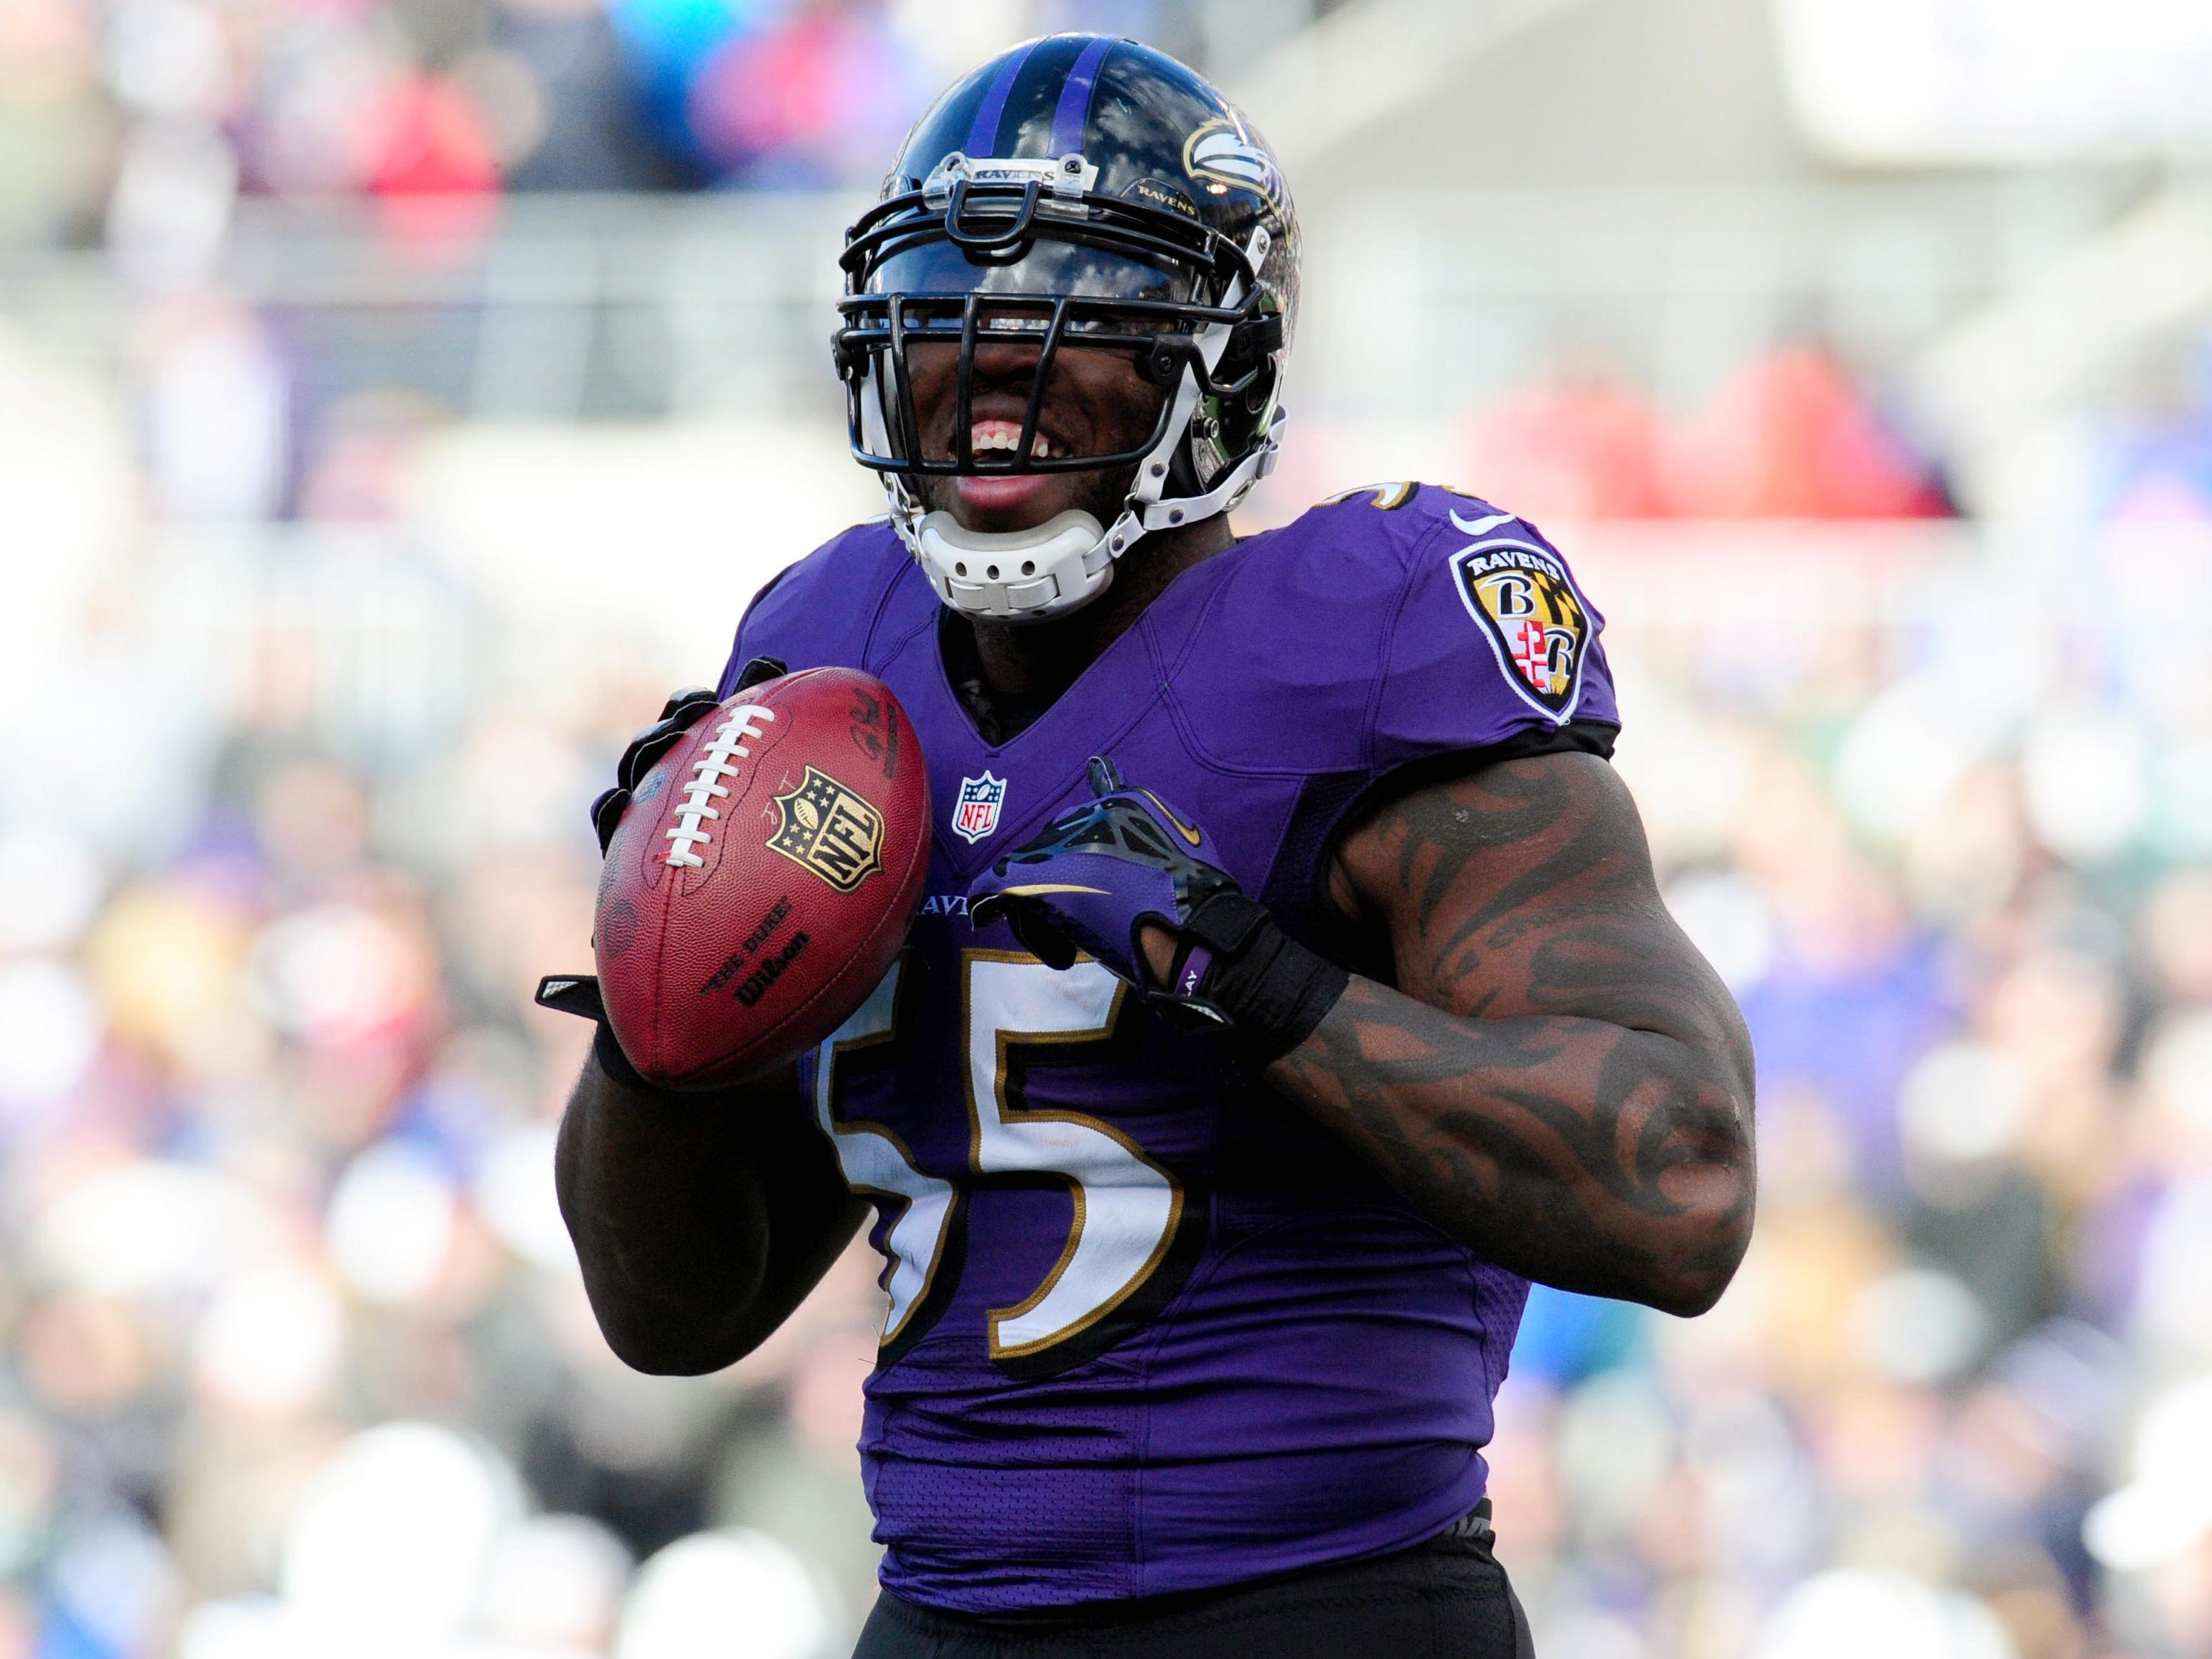 Baltimore Ravens linebacker Terrell Suggs (55) reacts after recovering a fumble in the second quarter against the New York Jets at M&T Bank Stadium. The Ravens won 19-3. Mandatory